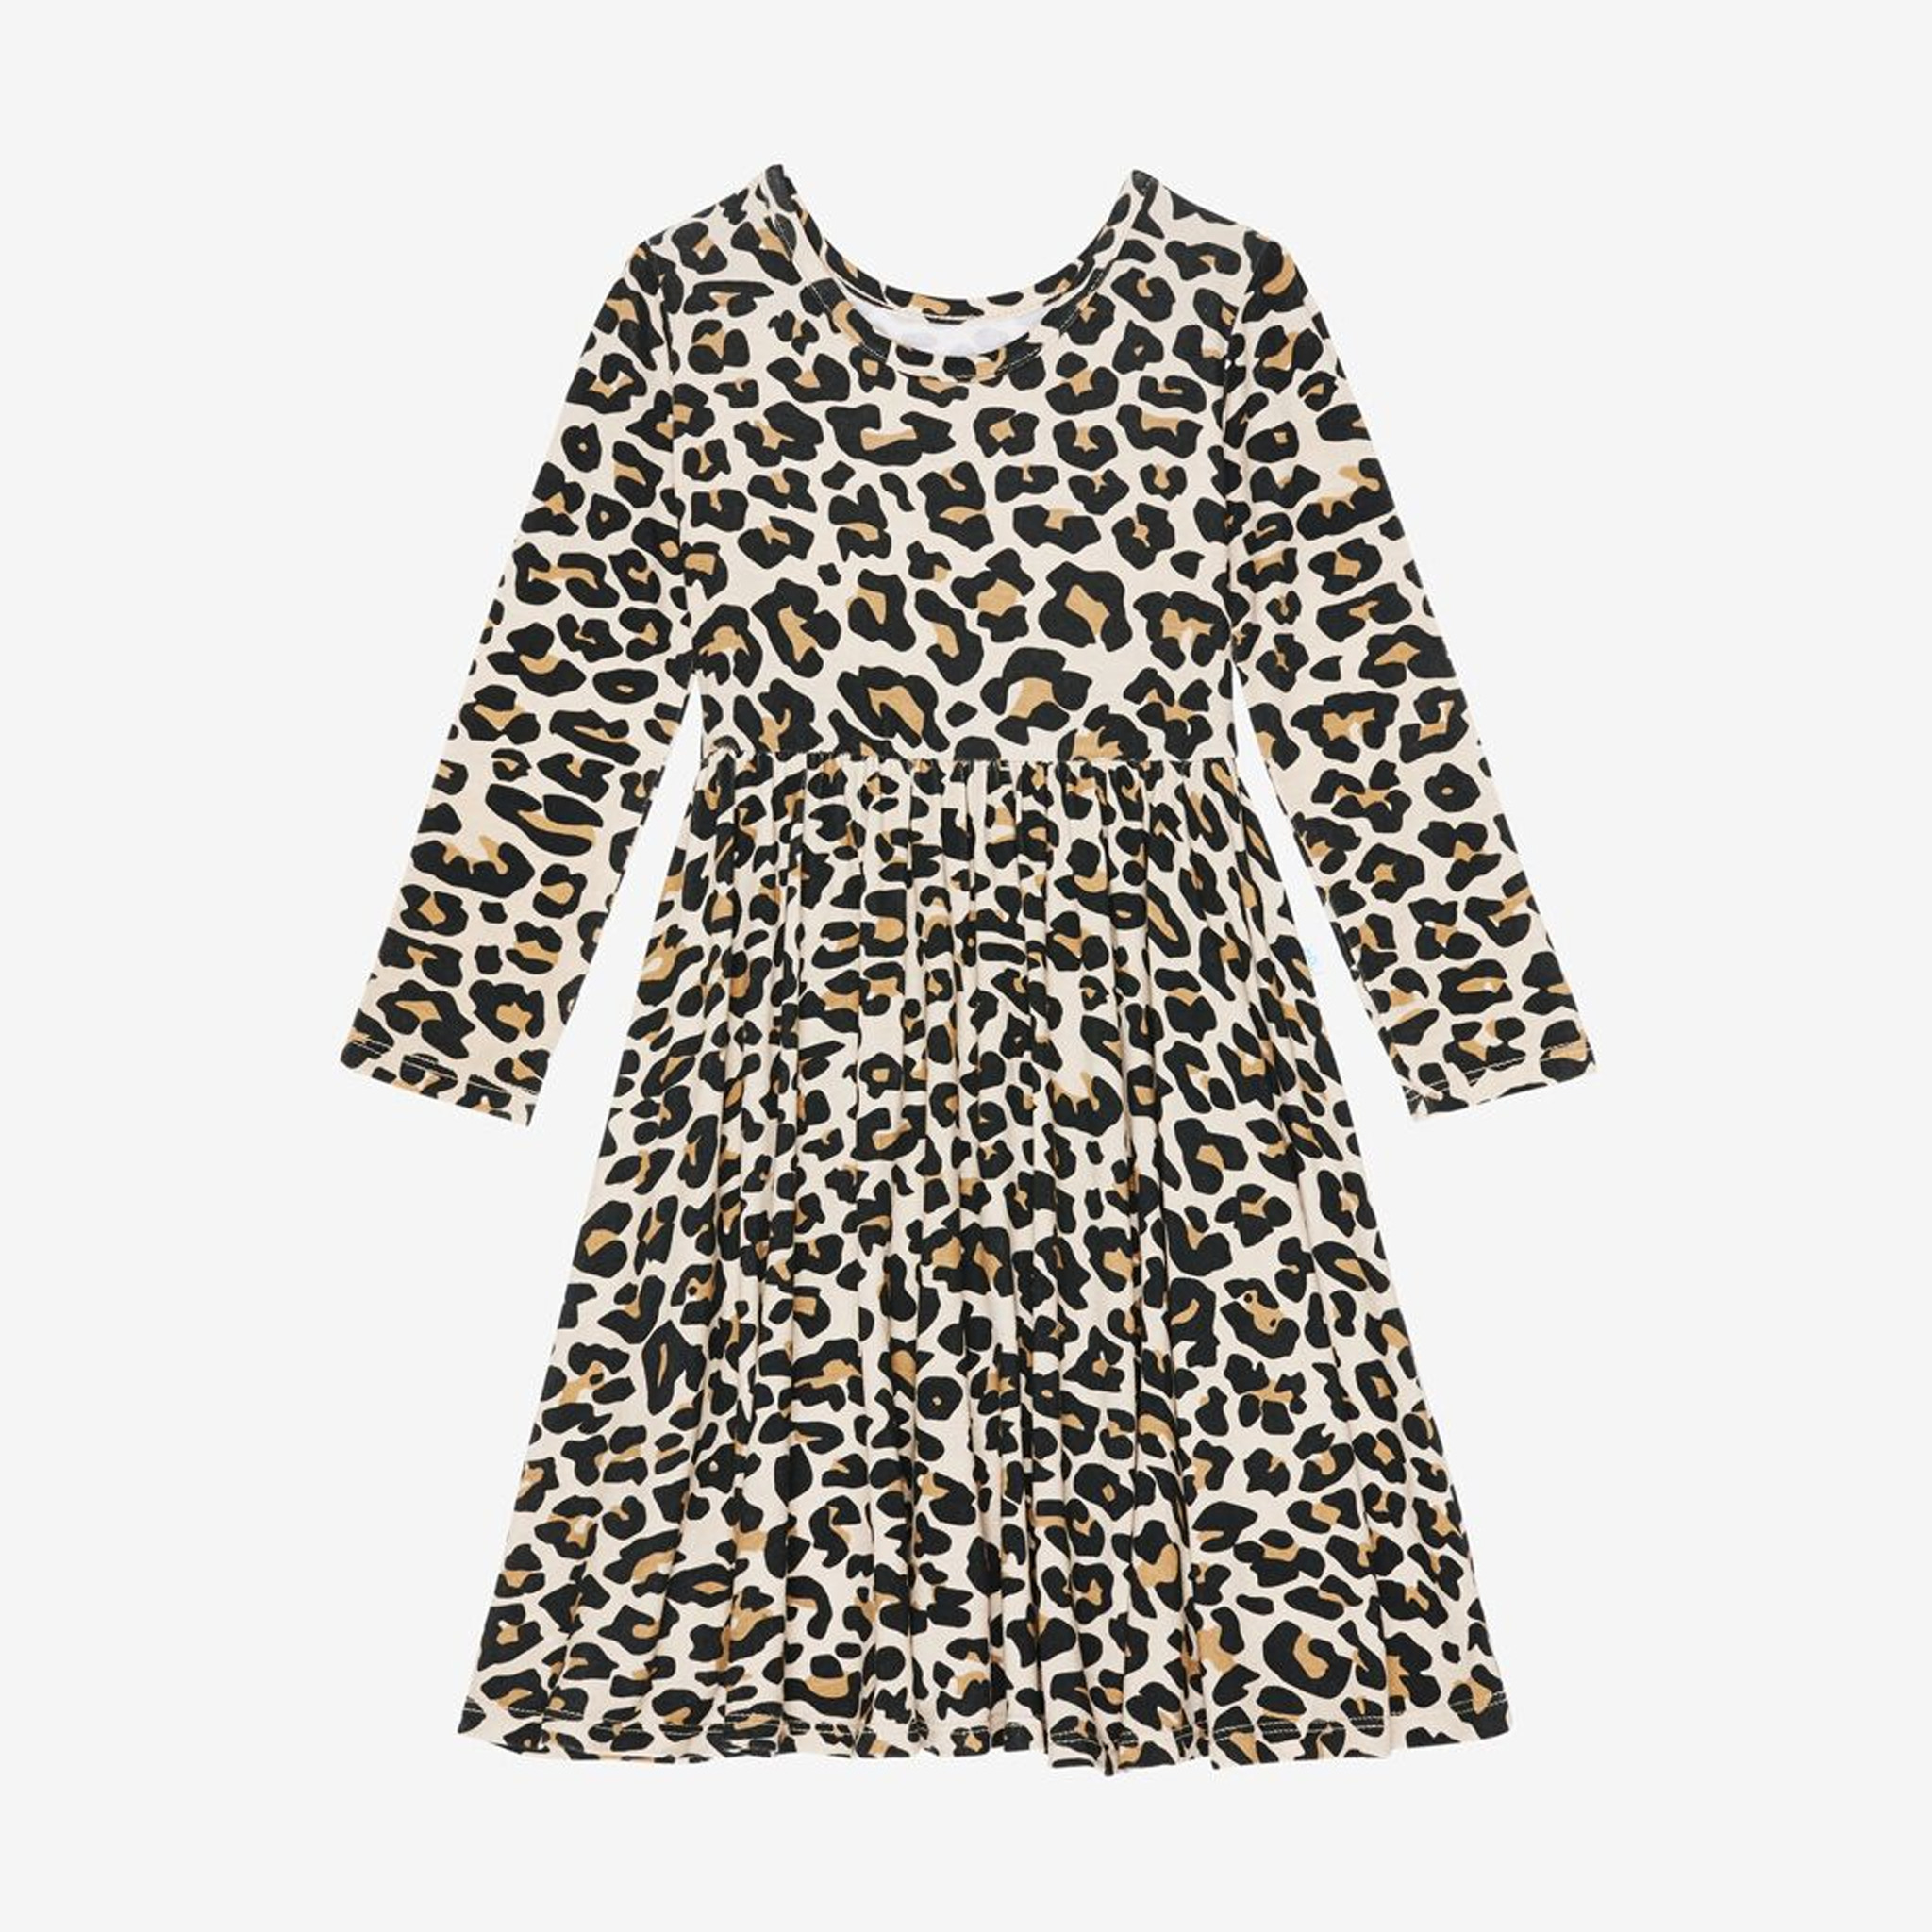 Posh Peanut Leopard Toddler Twirl Dress